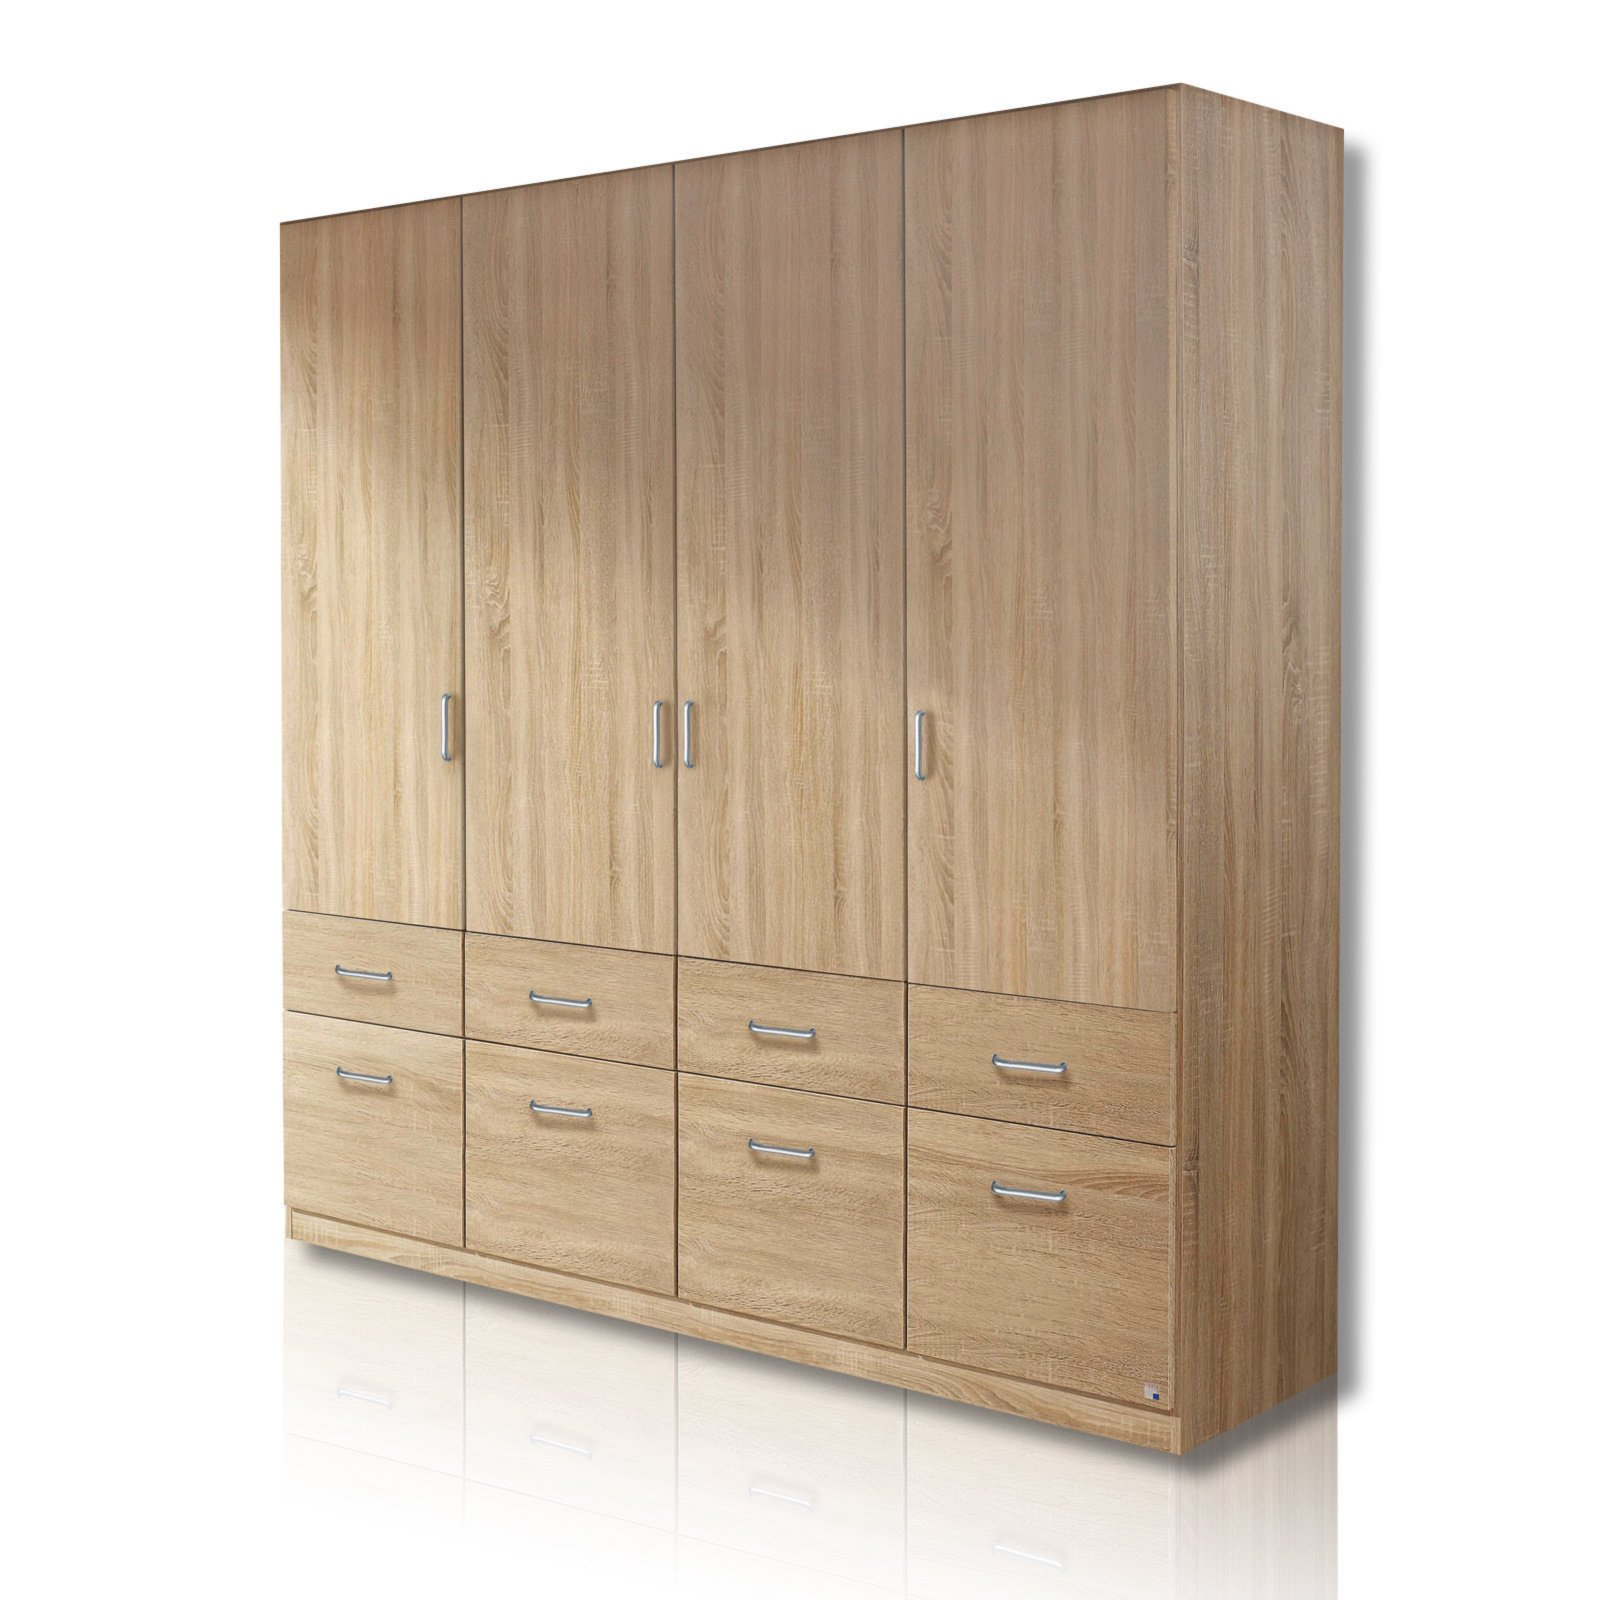 roller kleiderschrank aalen sonoma eiche 181 cm breit ebay. Black Bedroom Furniture Sets. Home Design Ideas